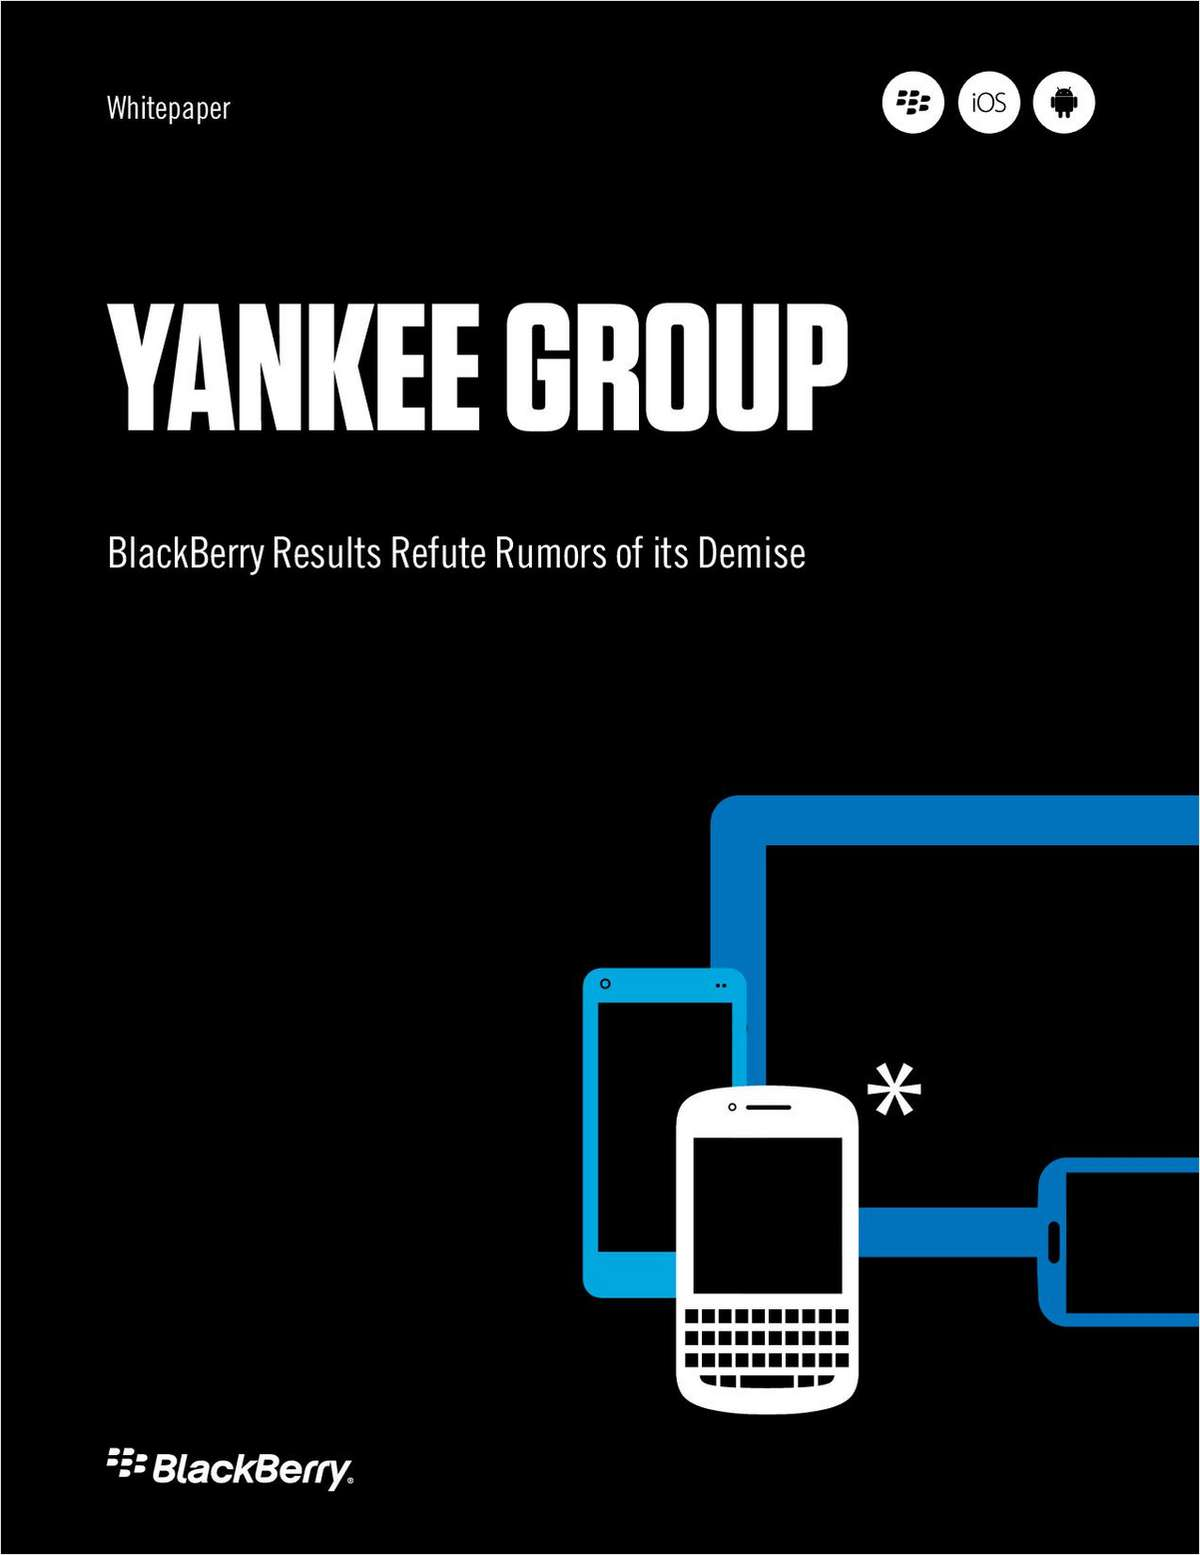 Yankee Group: BlackBerry Results Refute Rumors of its Demise